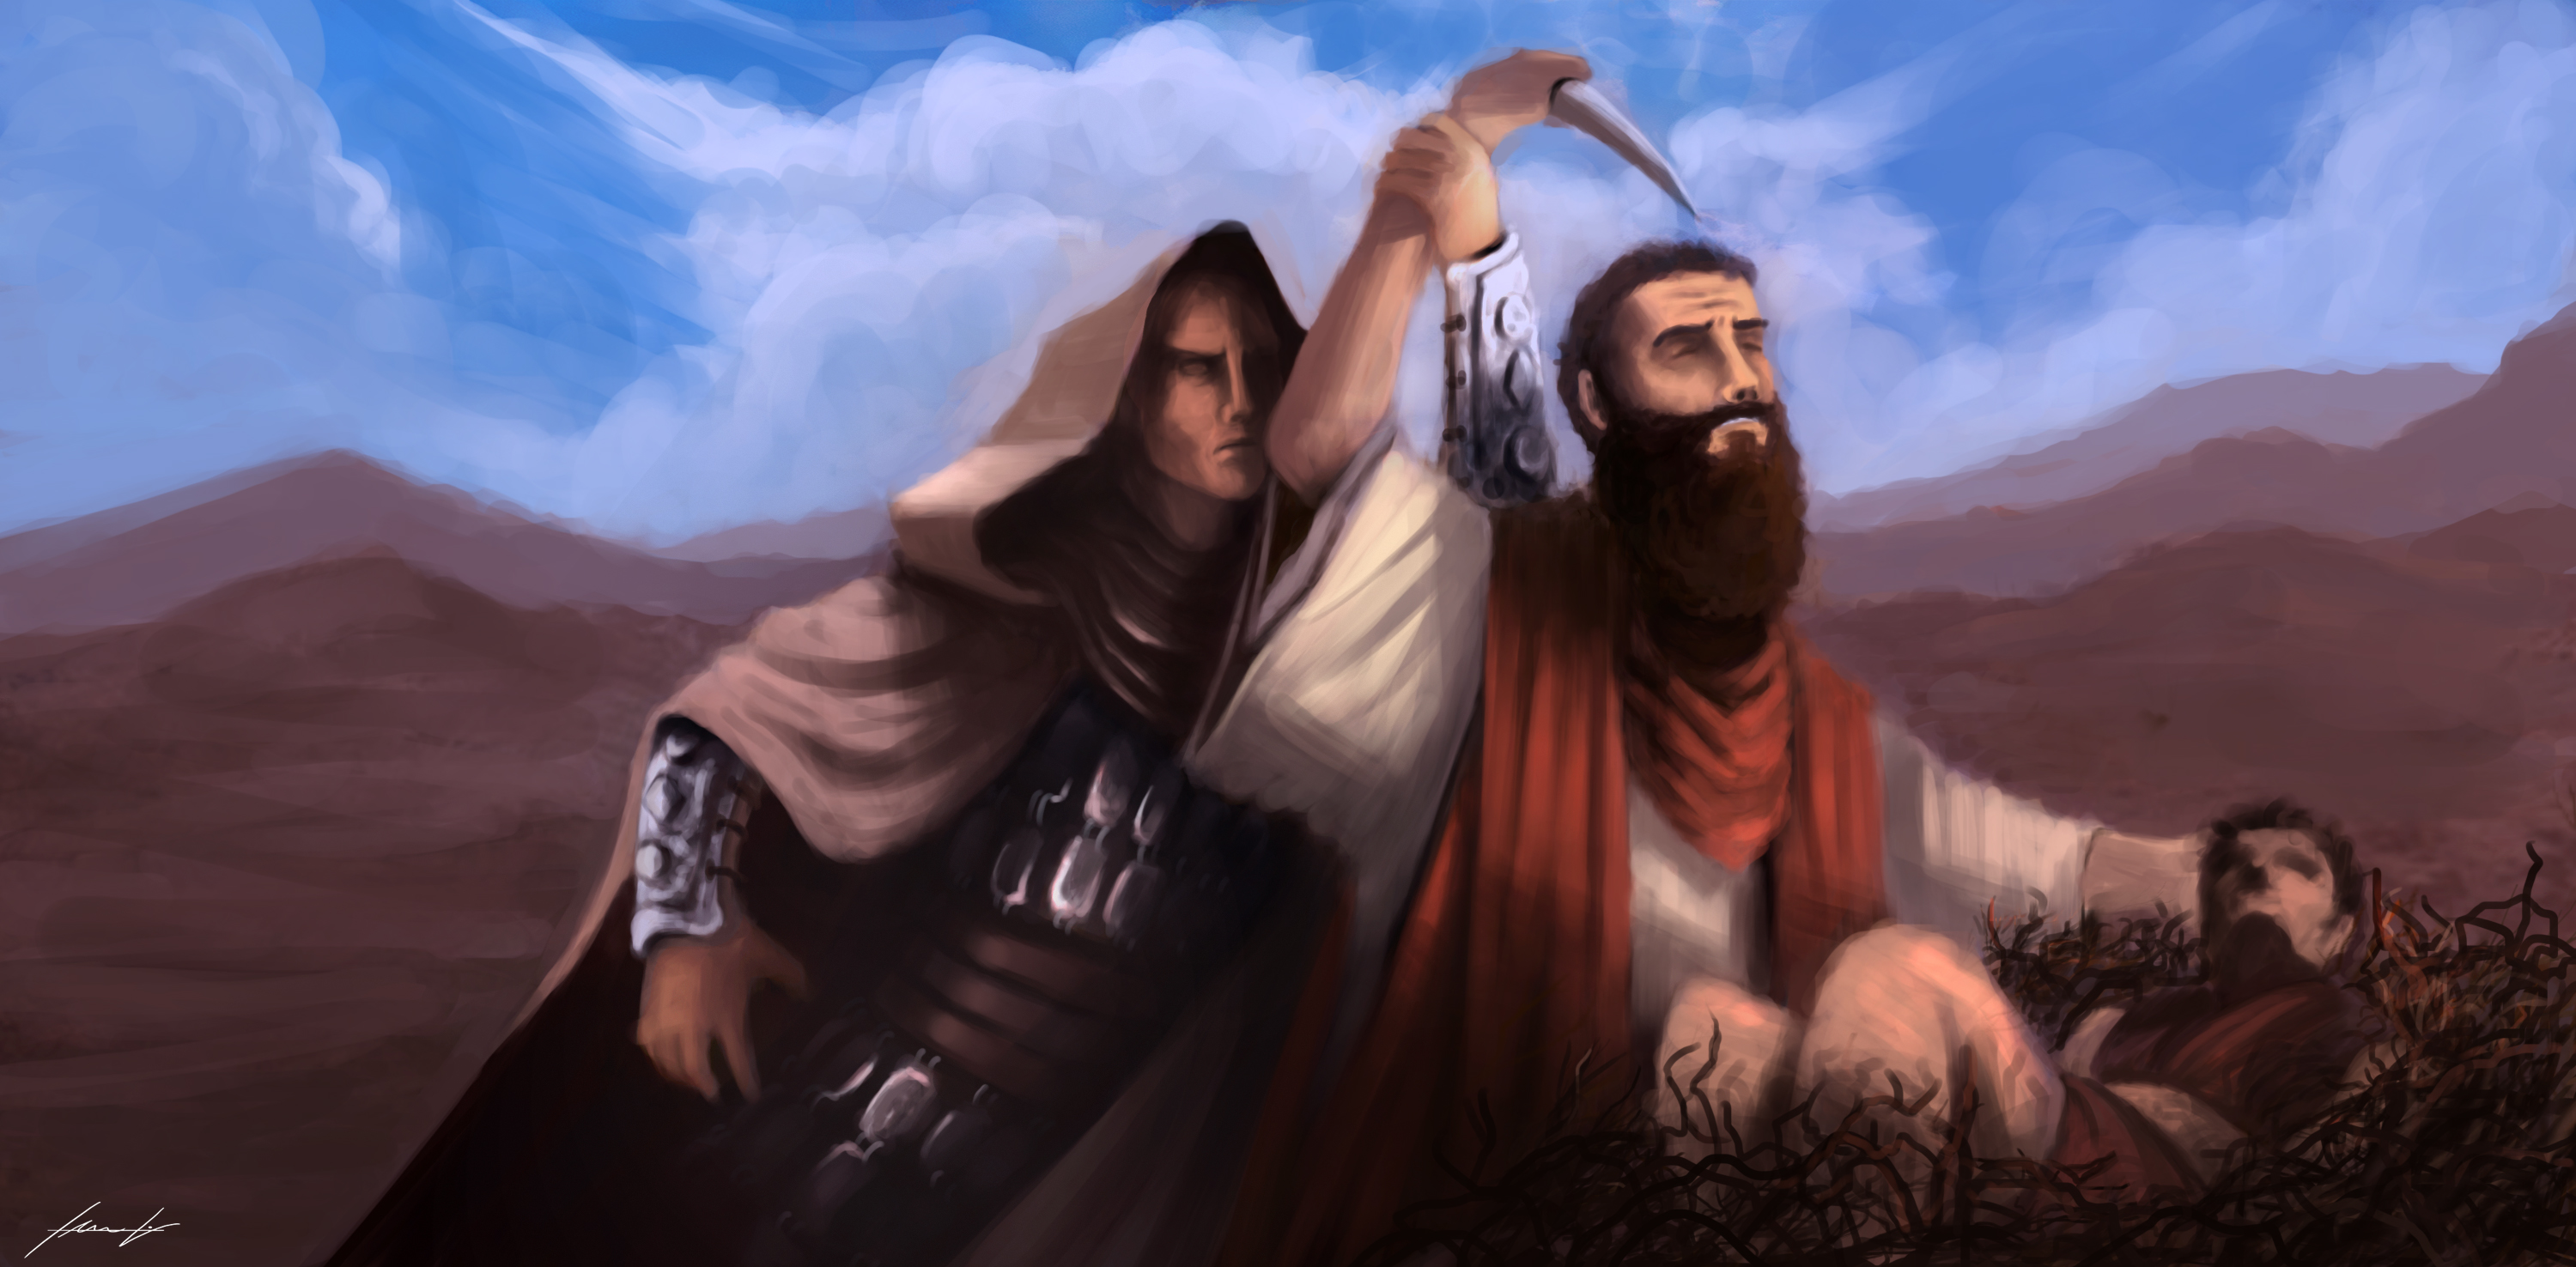 Abraham and Isaac by LouizBrito